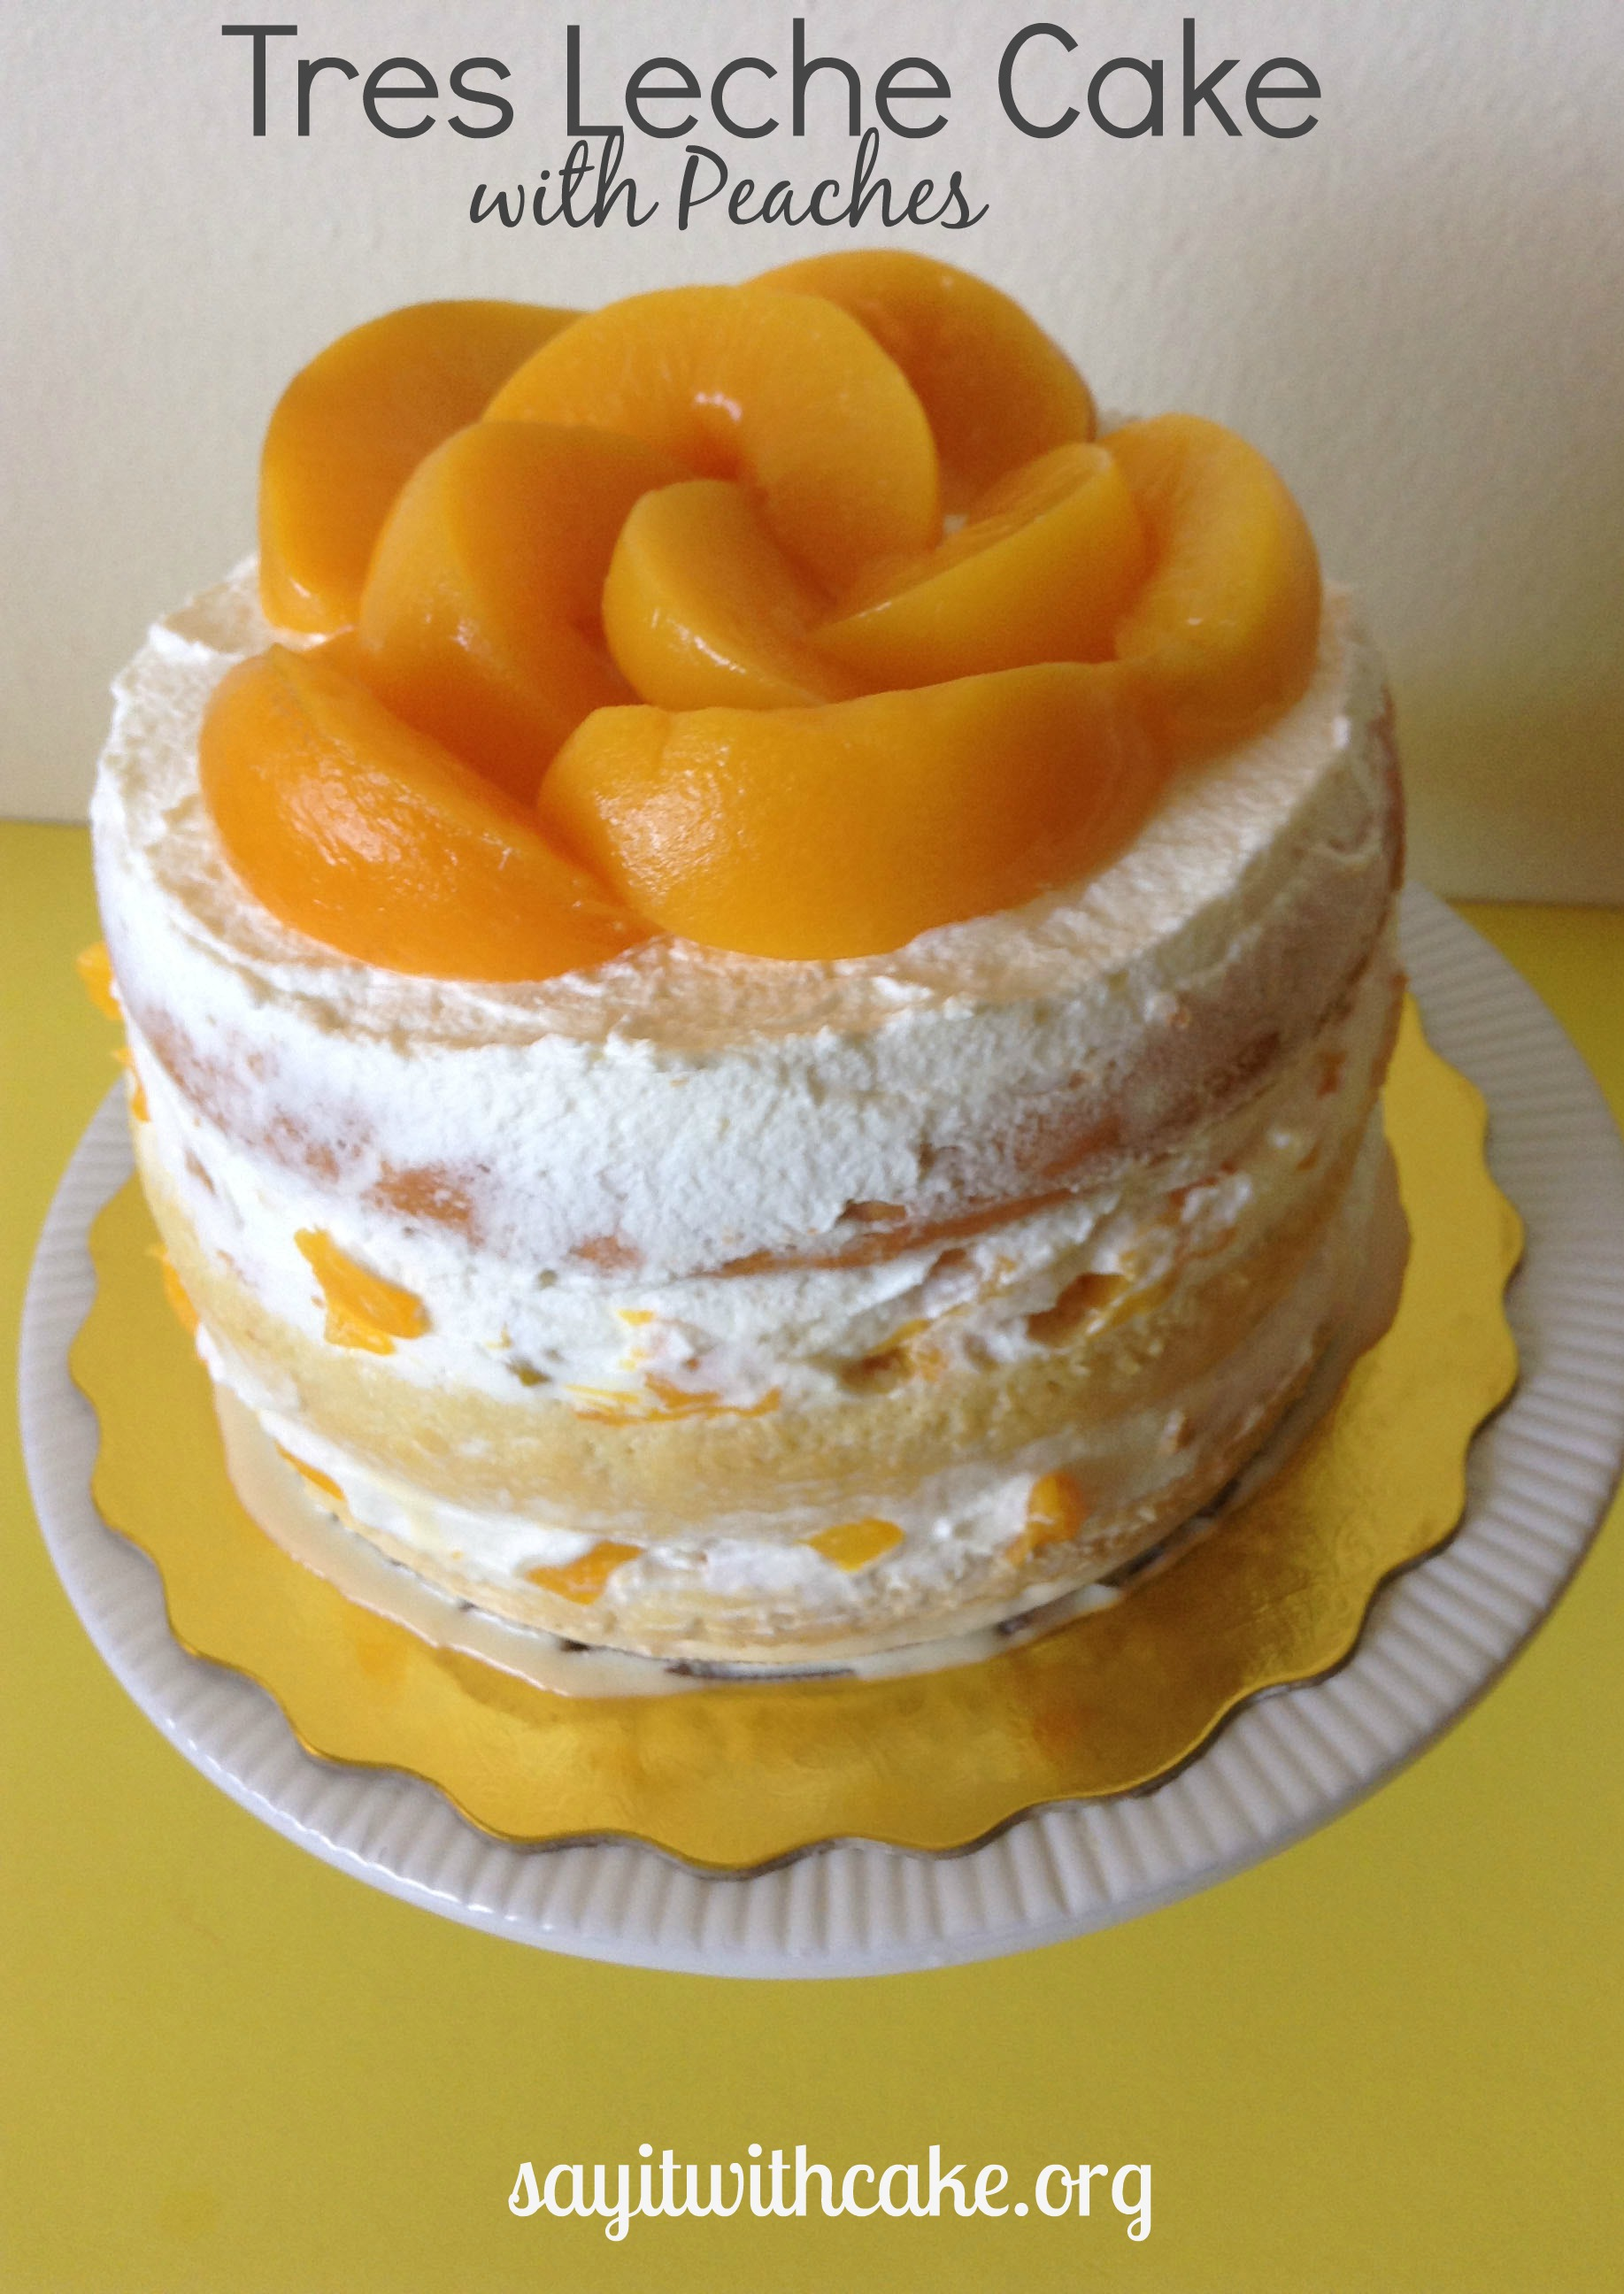 Layered Tres Leches Cake with Peaches | Say it With Cake